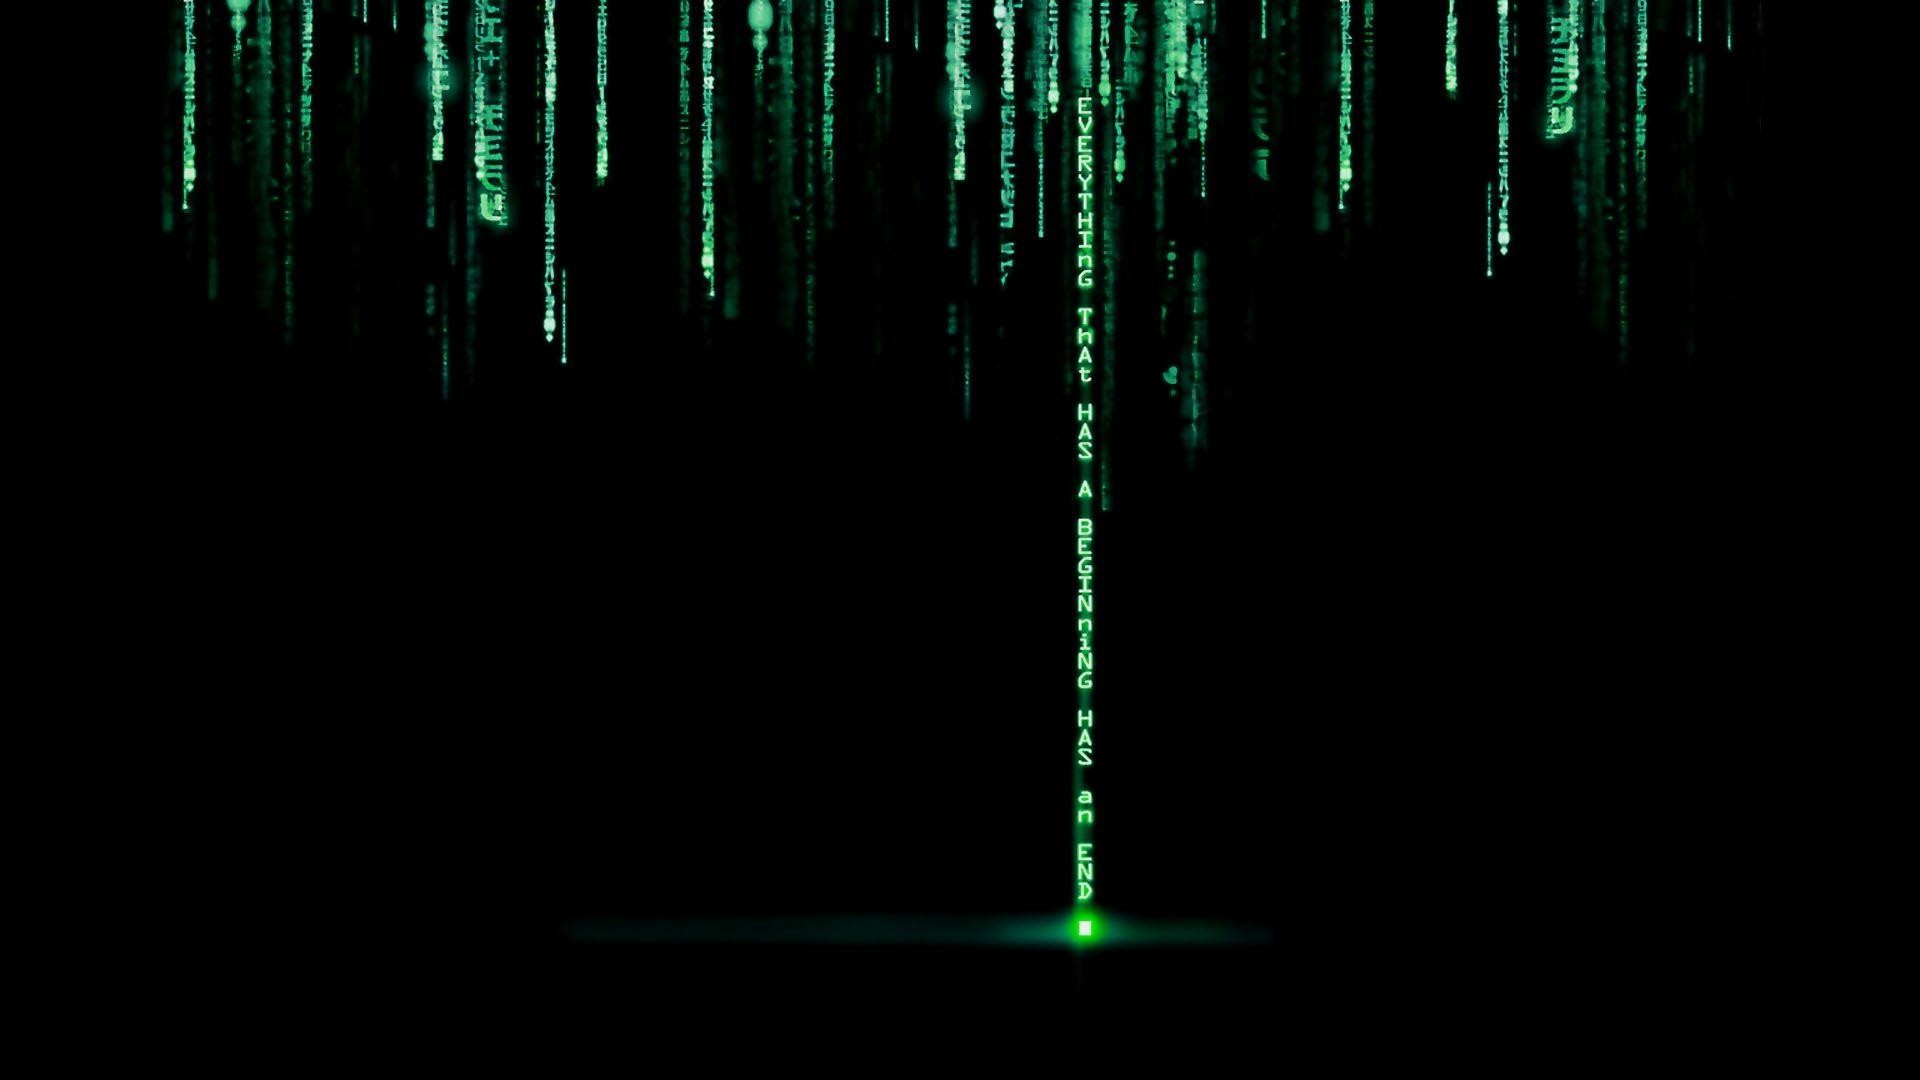 Animated cia wallpaper 73 images 1920x1080 wallpaper download animated matrix image pic wpc0012543 voltagebd Images